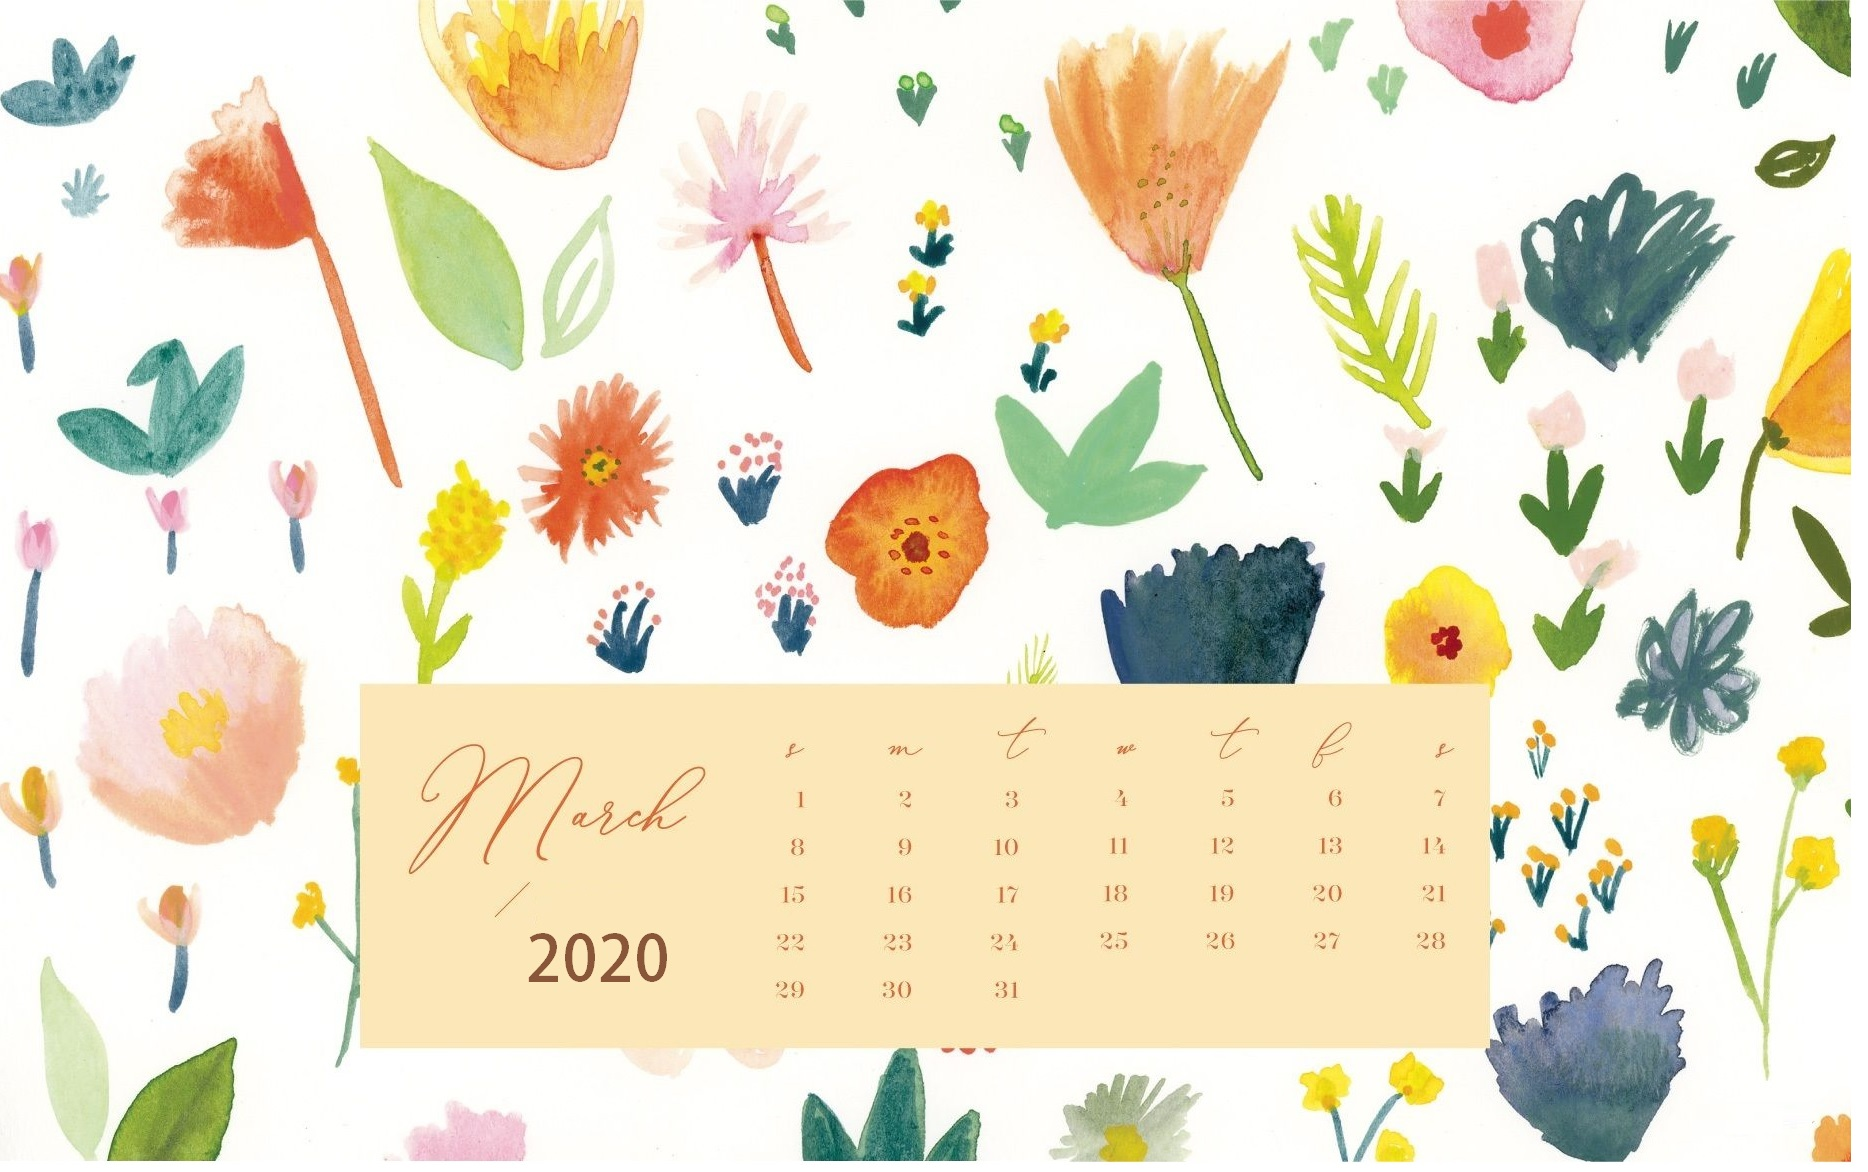 Cute 2020 Desktop Calendar Wallpaper Latest Calendar 1868x1172